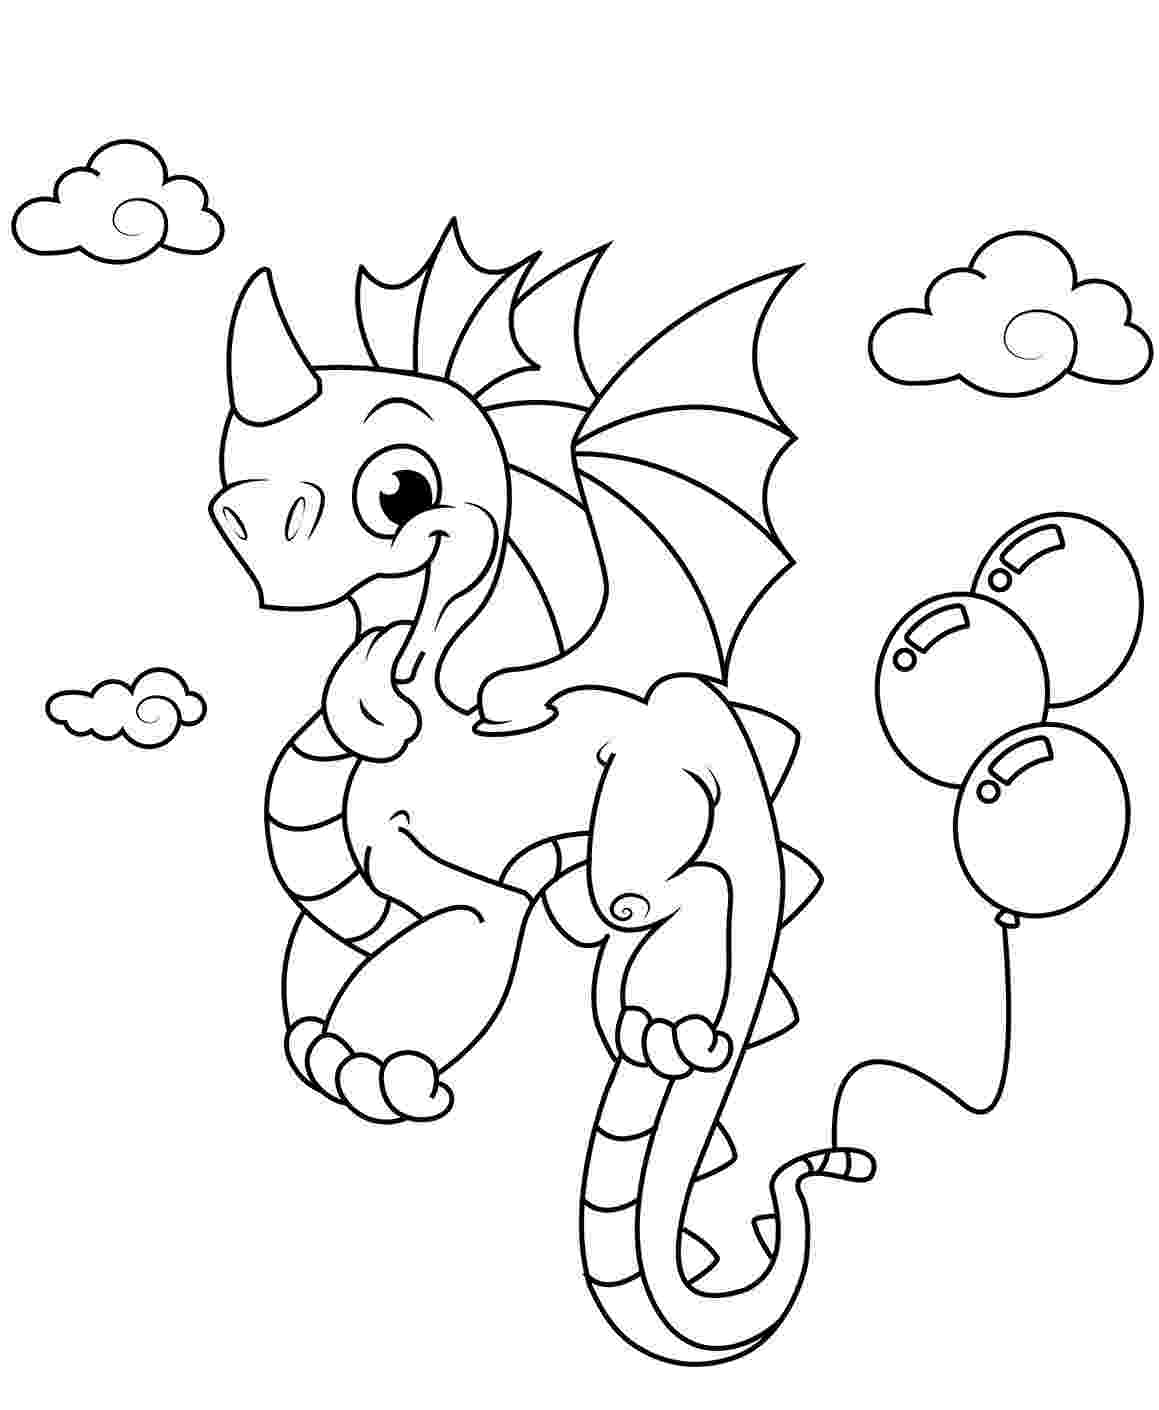 a coloring sheet doll coloring pages best coloring pages for kids sheet coloring a